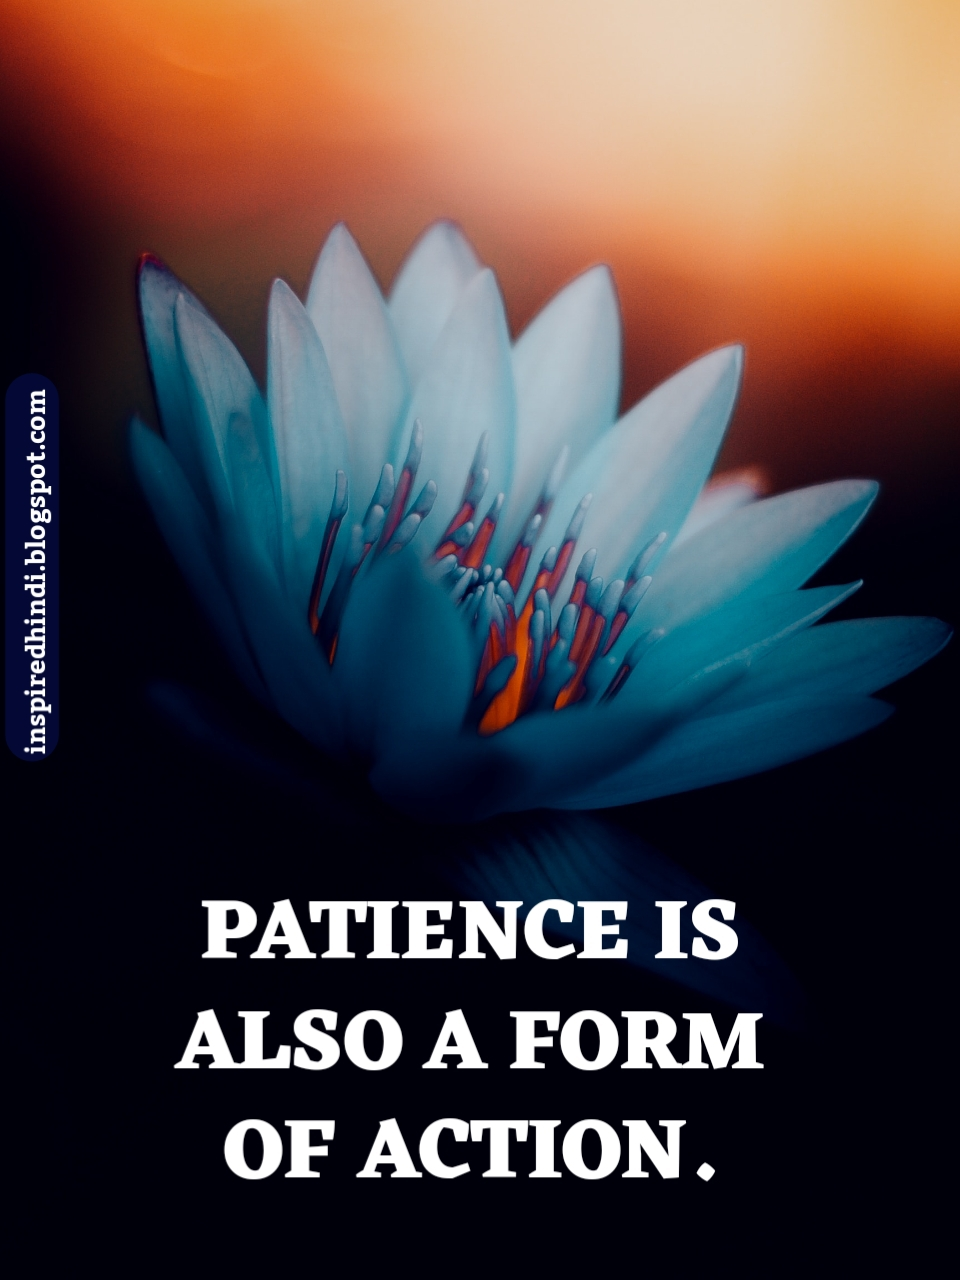 PATIENCE IS ALSO A FORM OF ACTION.